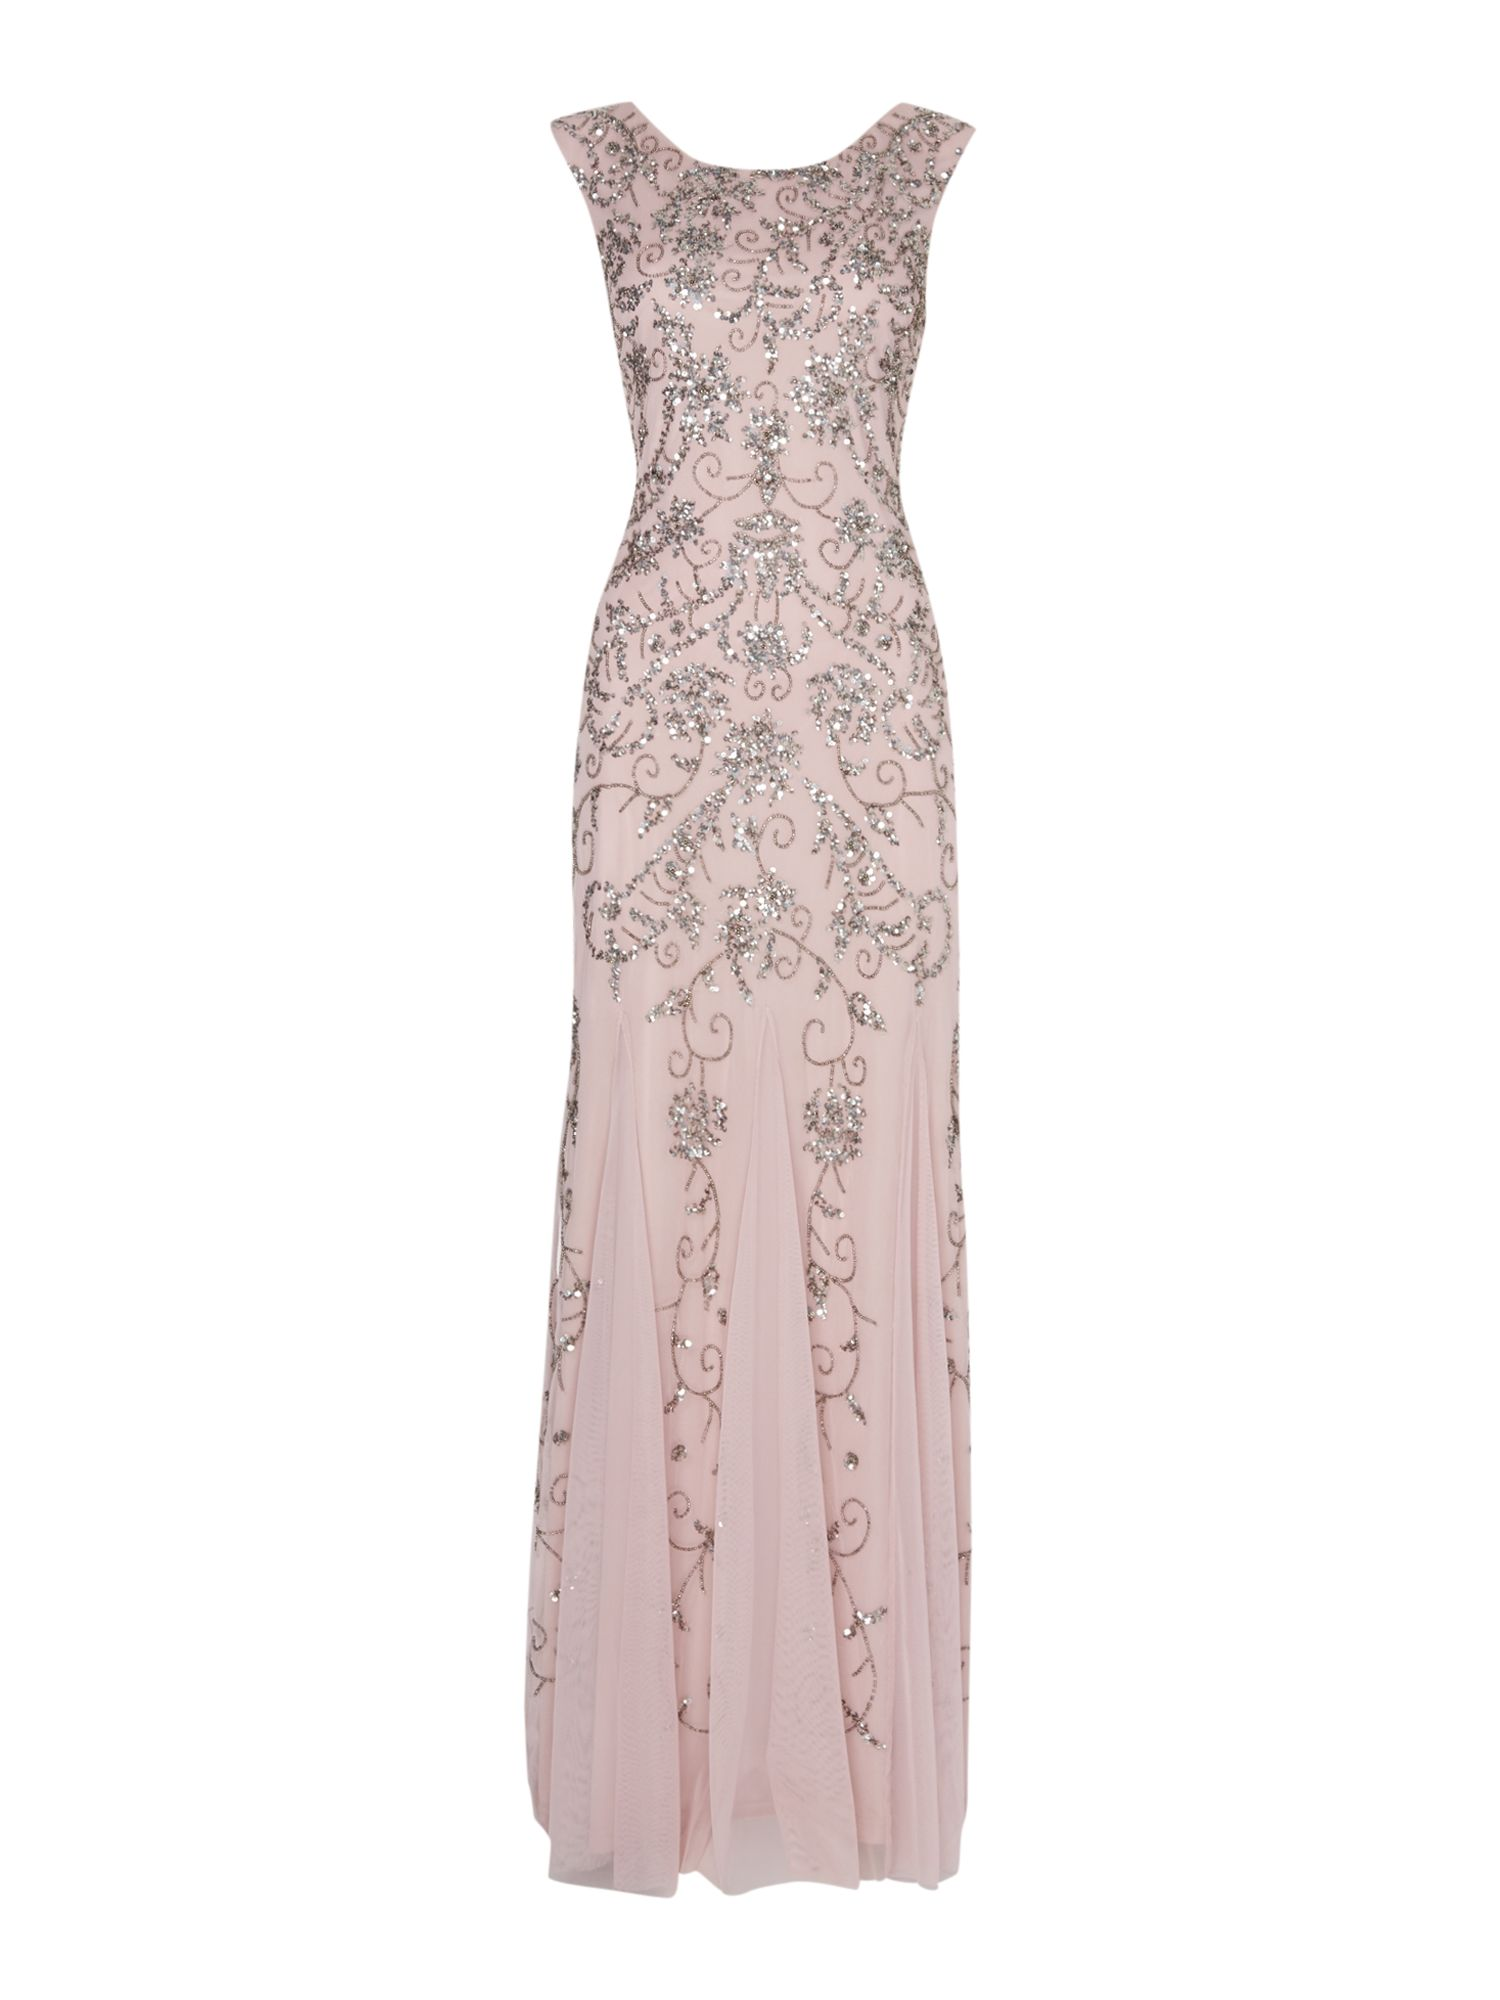 Adrianna Papell Brocade beaded sequin gown $116.00 AT vintagedancer.com